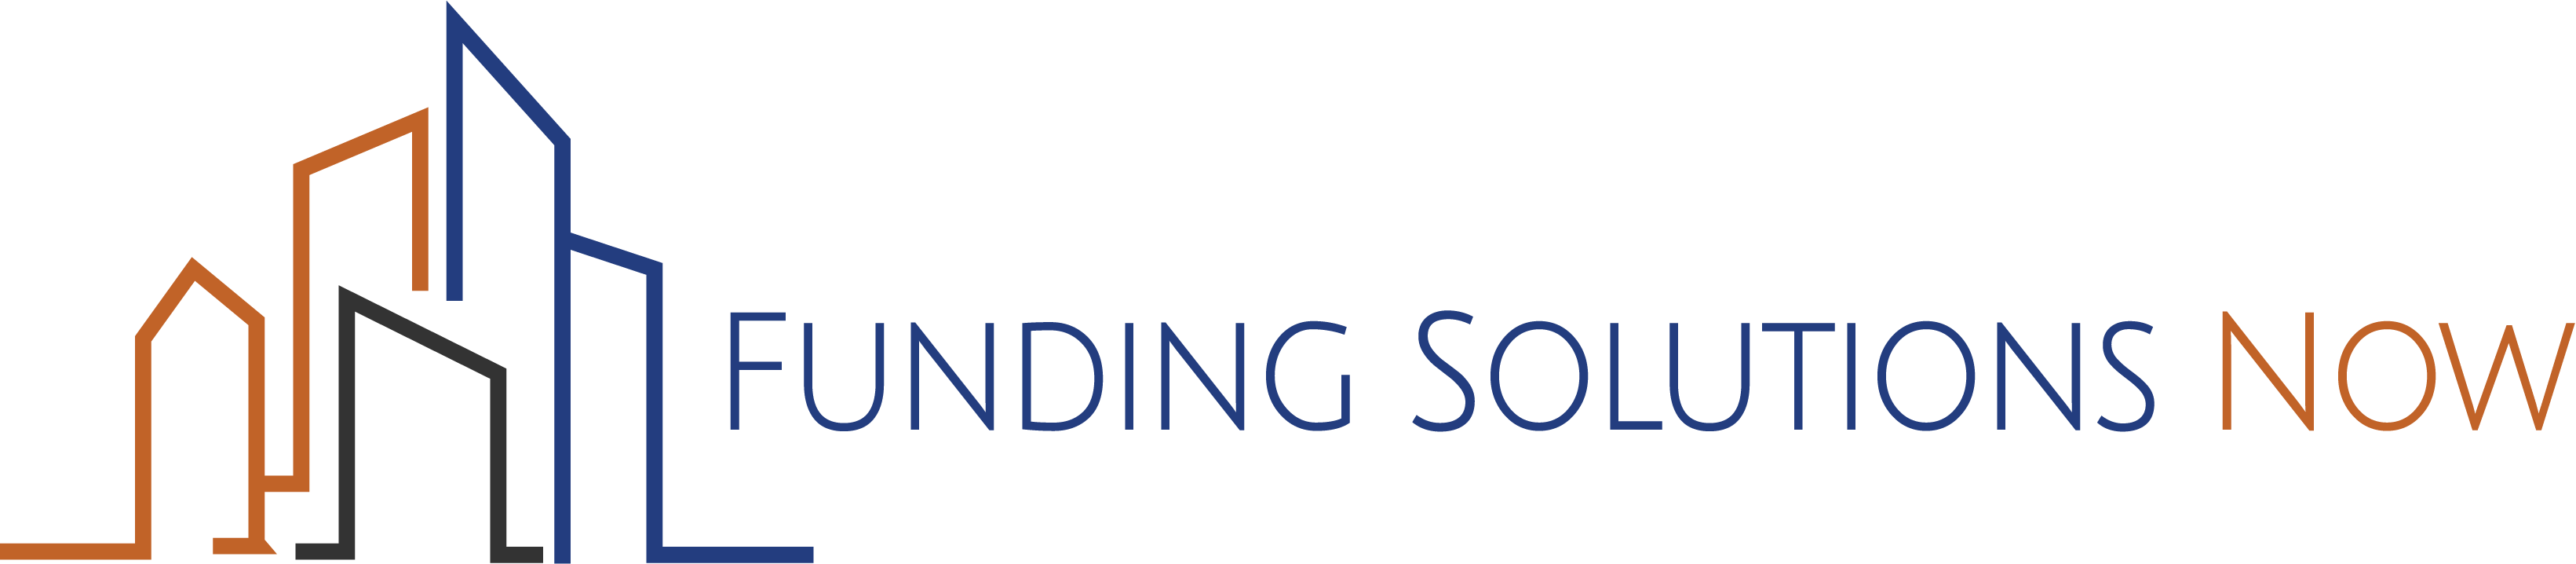 Funding Solutions Now | Get Funded Now